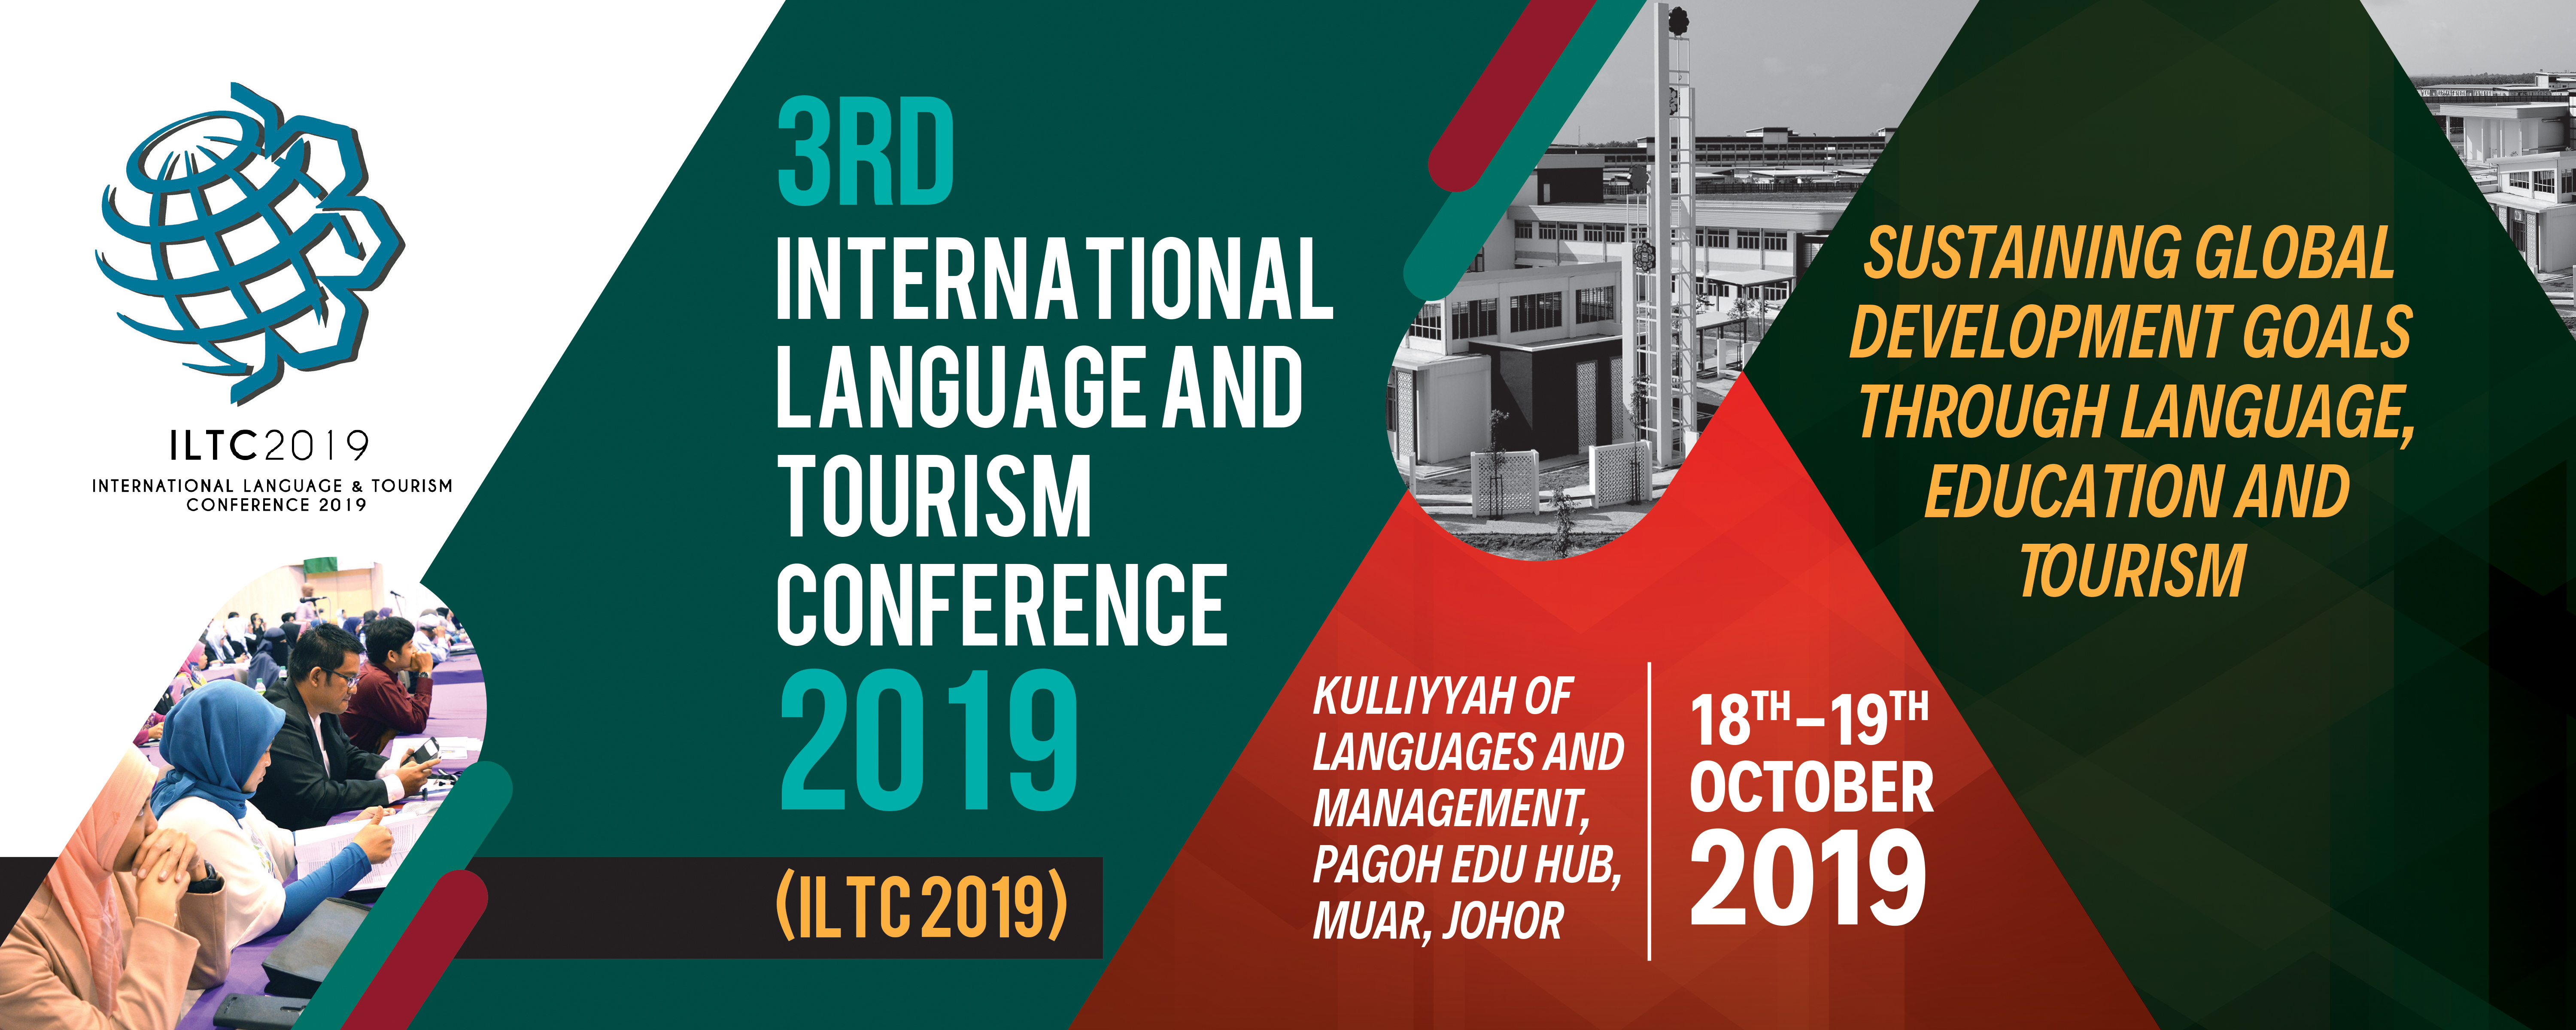 International Language and Tourism Conference 2019 (ILTC 2019)